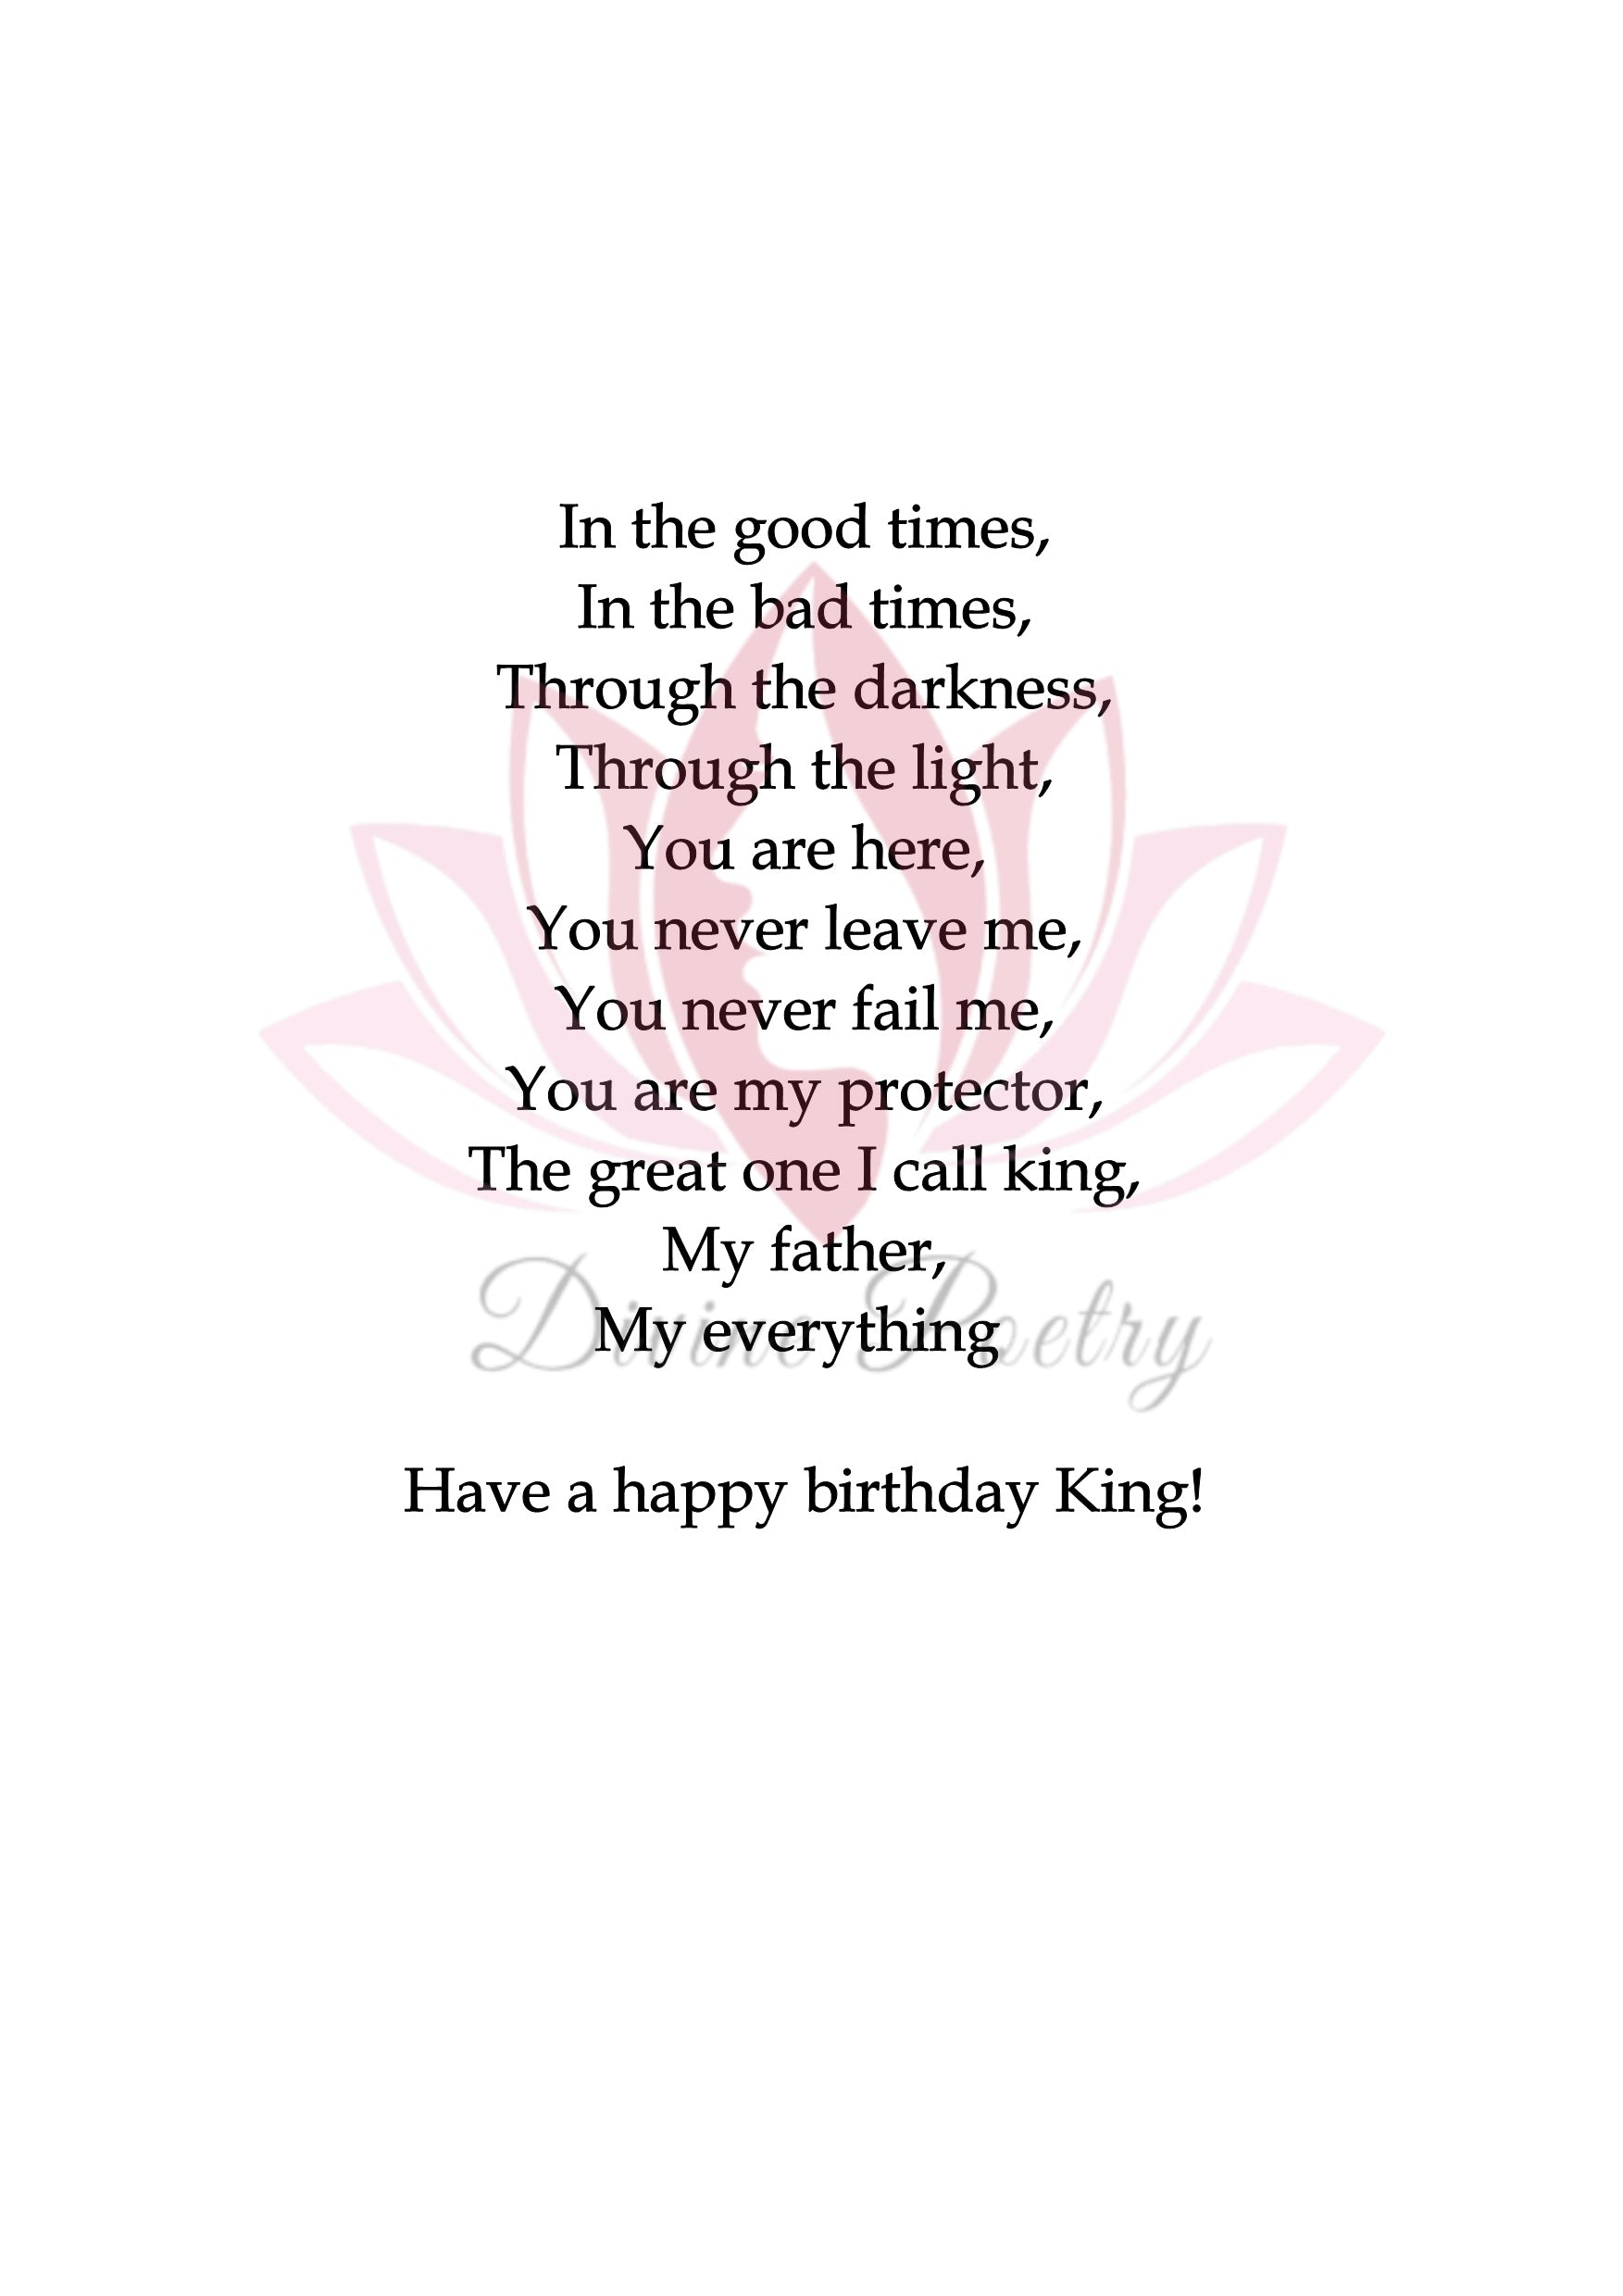 Happy Birthday Stepdad - Divine Poetry